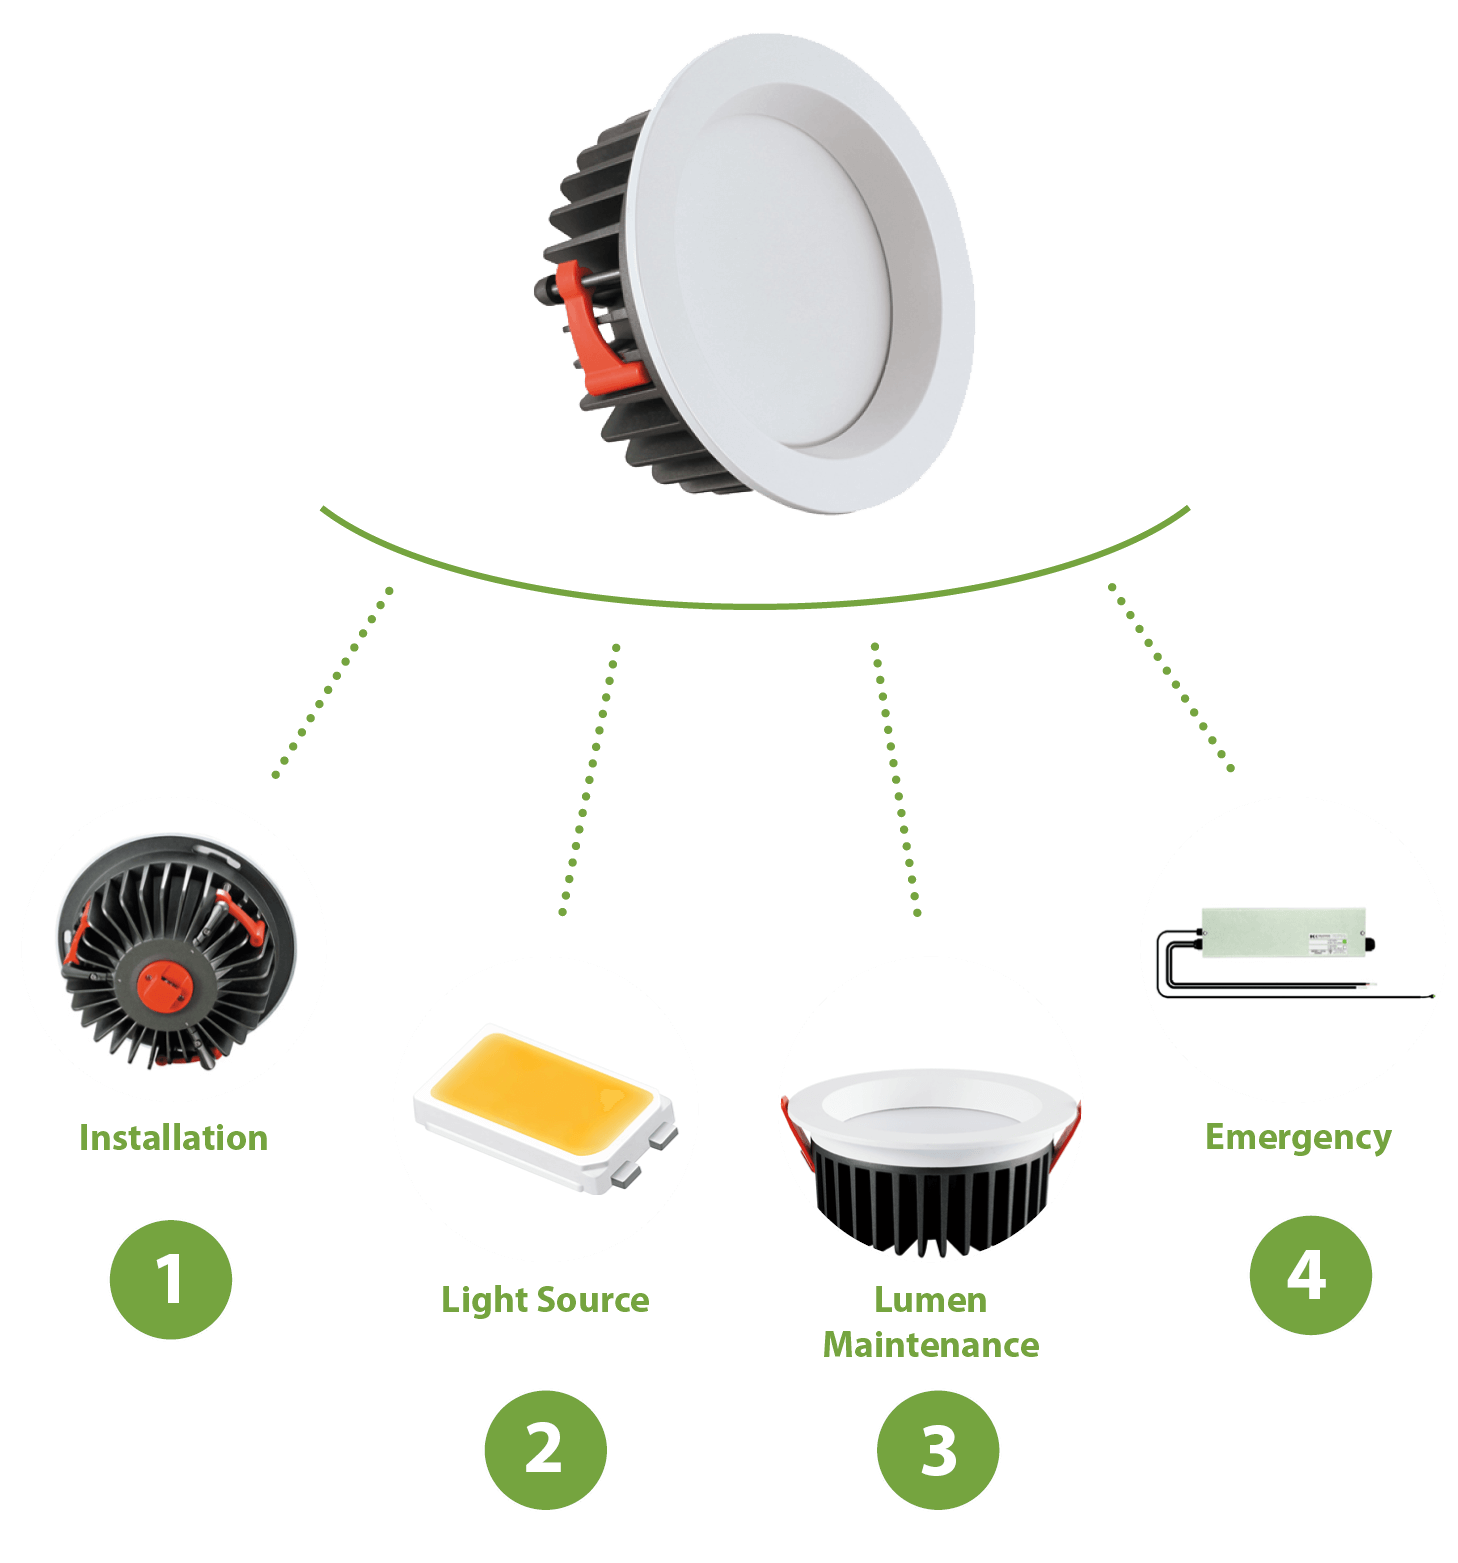 Wilson Premium LED Downlight Designed for Purpose